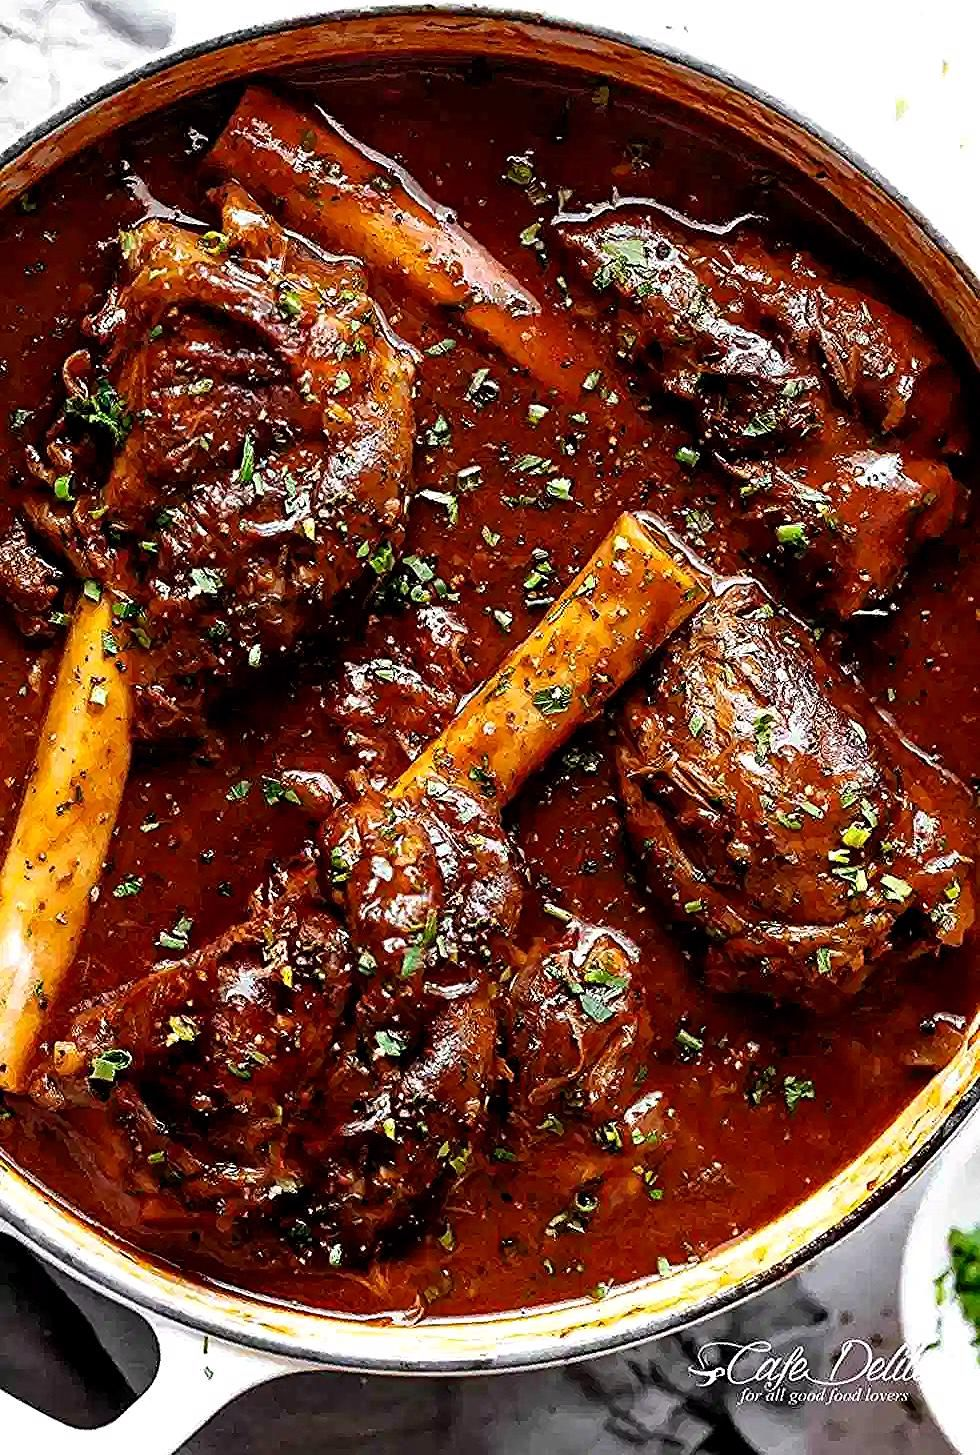 Braised Lamb Shanks In A Casserole Pot In 2020 Lamb Stew Recipes Slow Cooked Lamb Shanks Slow Cooked Lamb